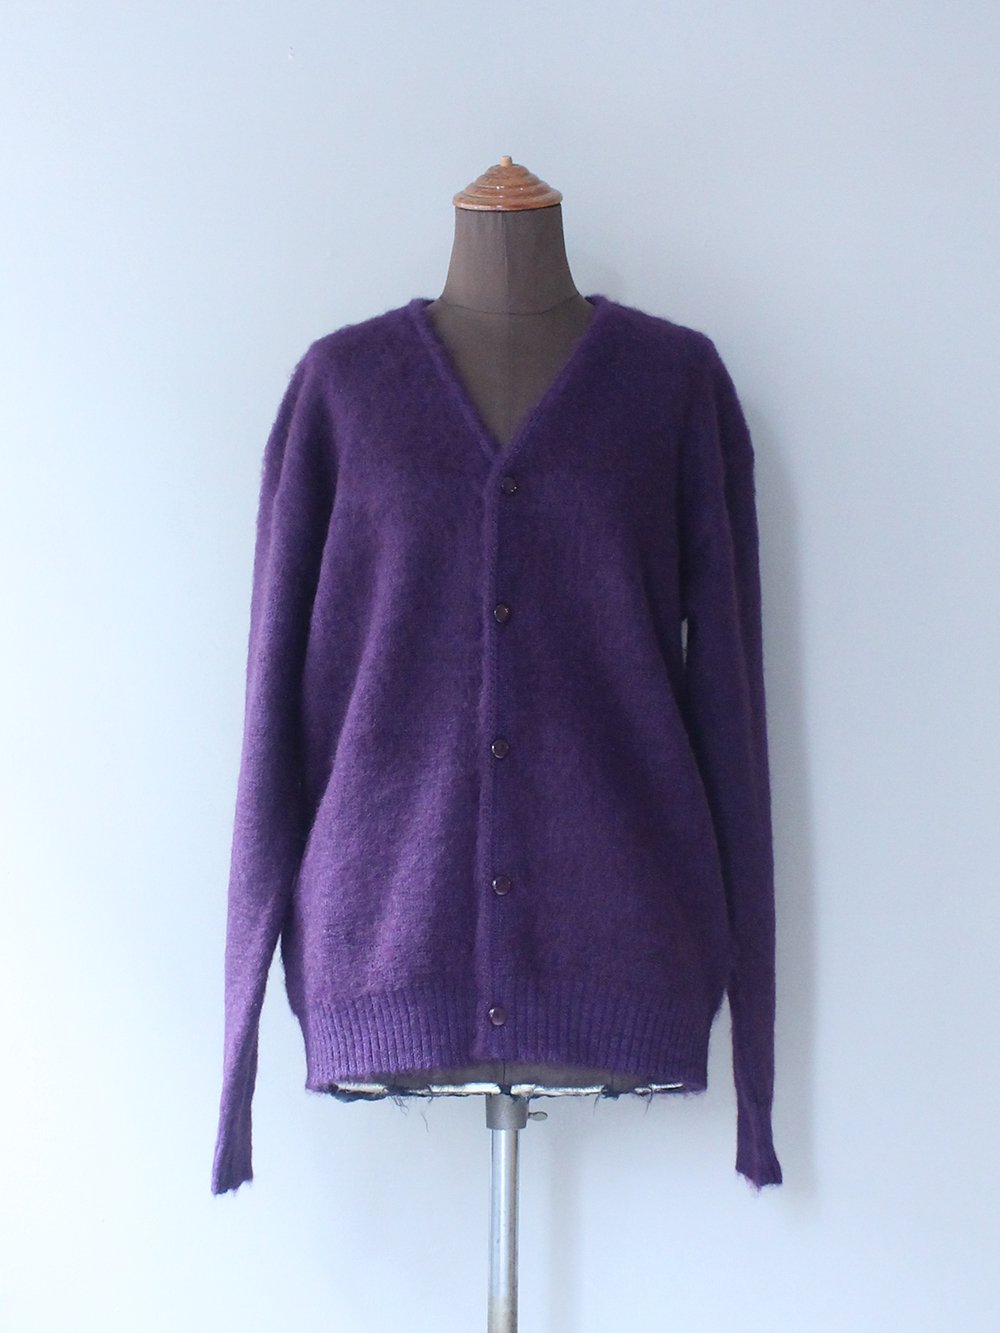 """<img class='new_mark_img1' src='https://img.shop-pro.jp/img/new/icons8.gif' style='border:none;display:inline;margin:0px;padding:0px;width:auto;' />Needles """" Mohair cardigan - Solid (PURPLE)"""""""